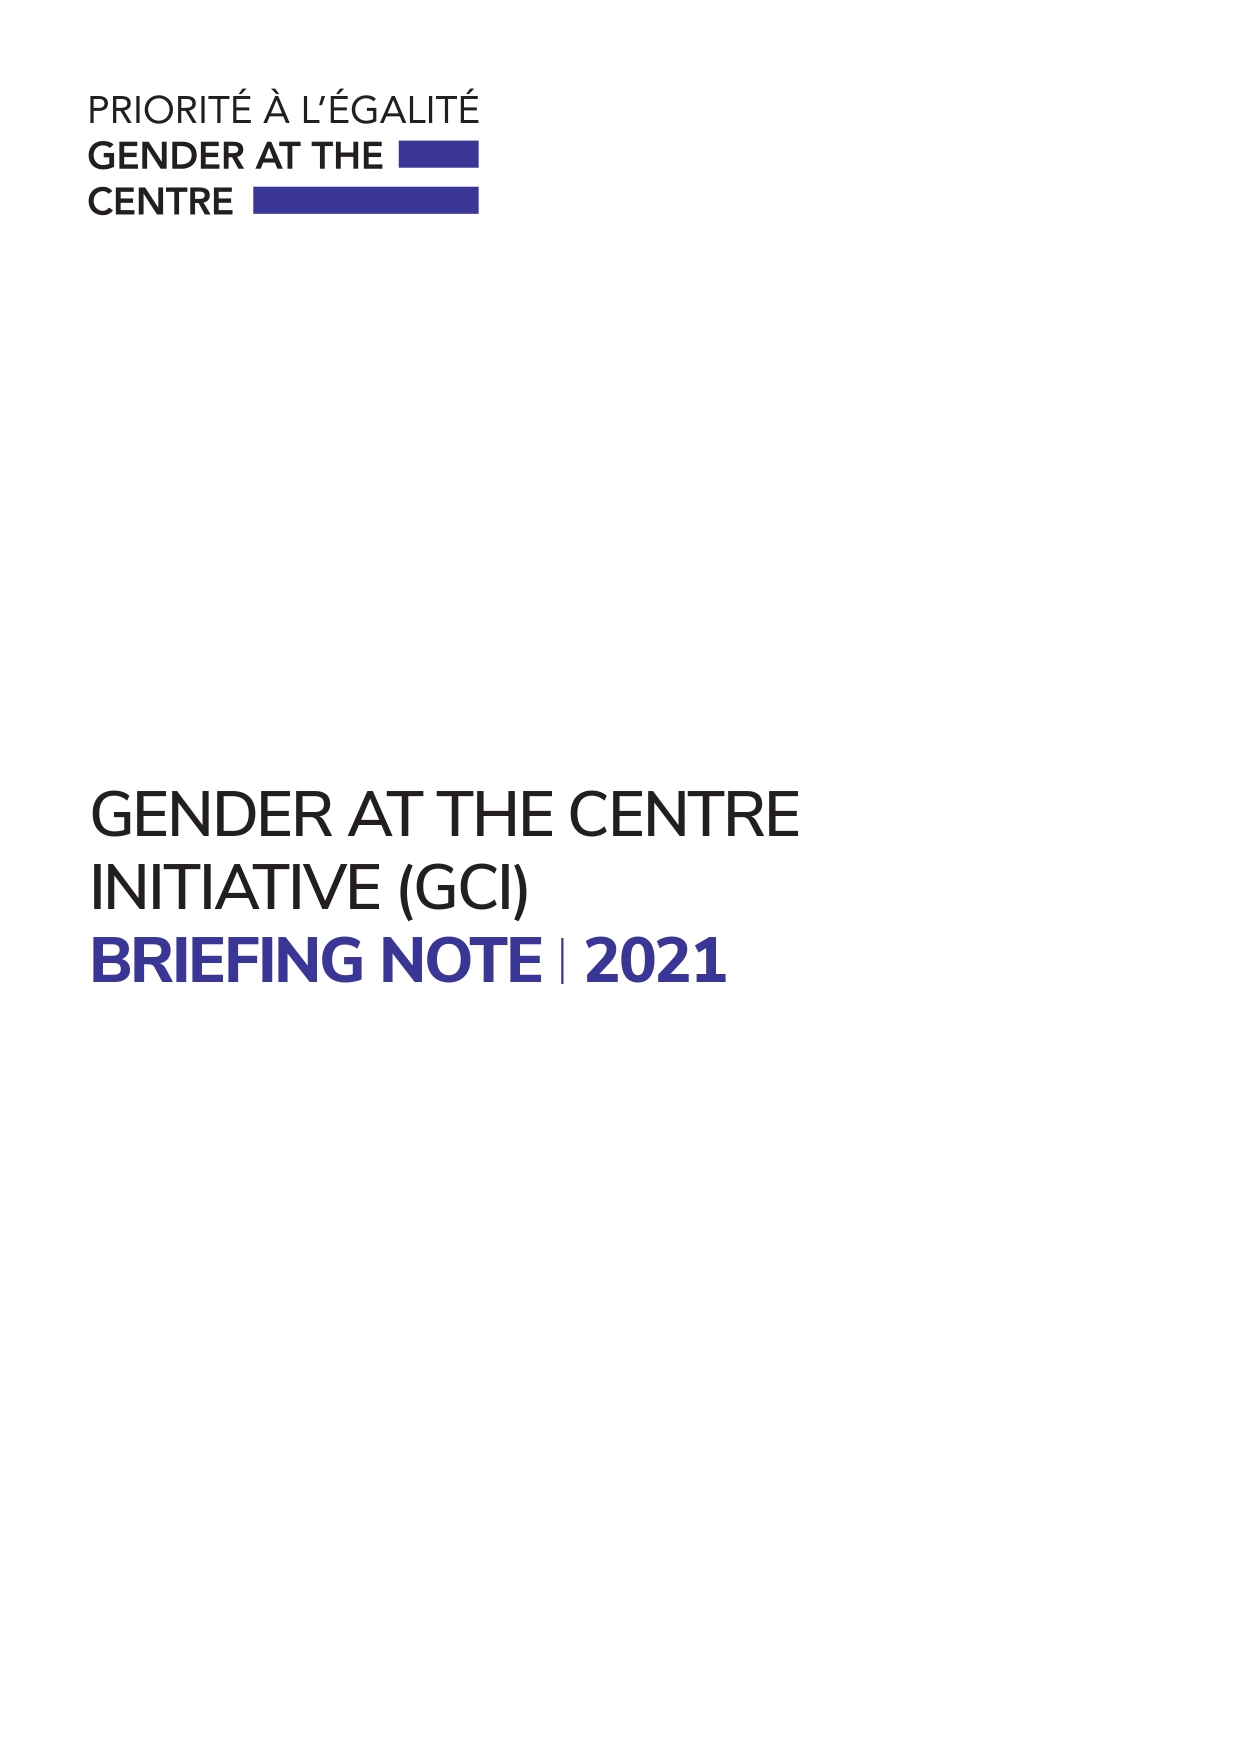 GENDER AT THE CENTRE INITIATIVE (GCI) BRIEFING NOTE